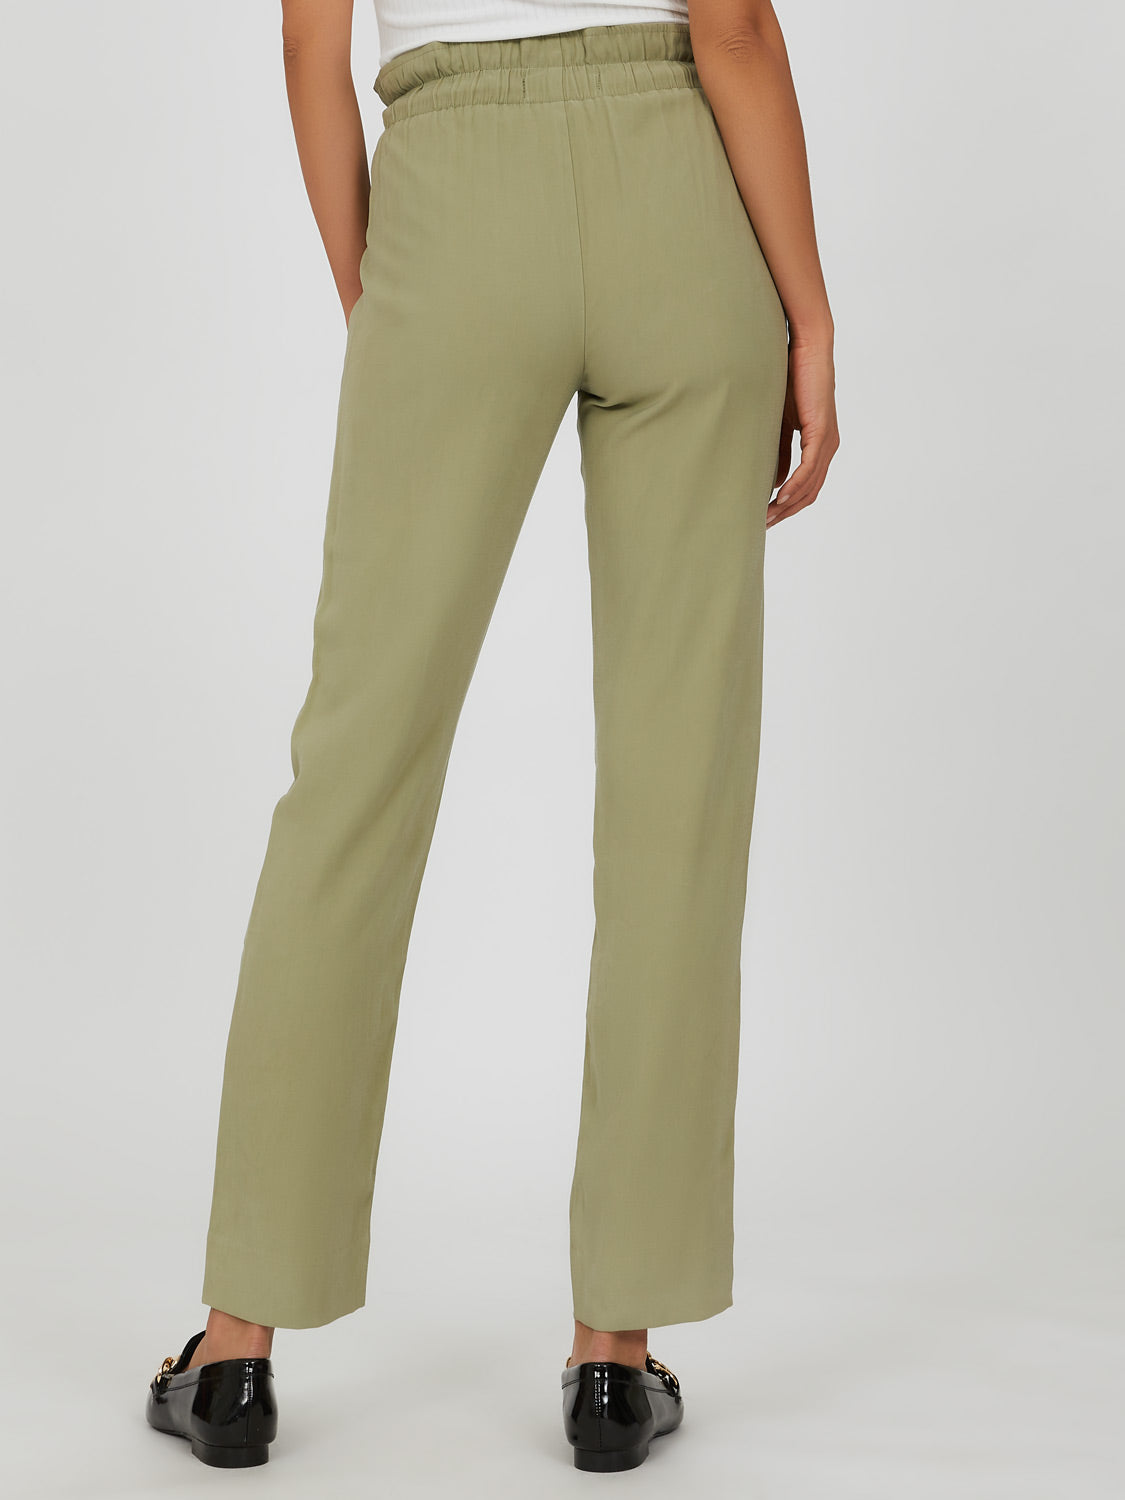 Paperbag Tencel Slim Pant